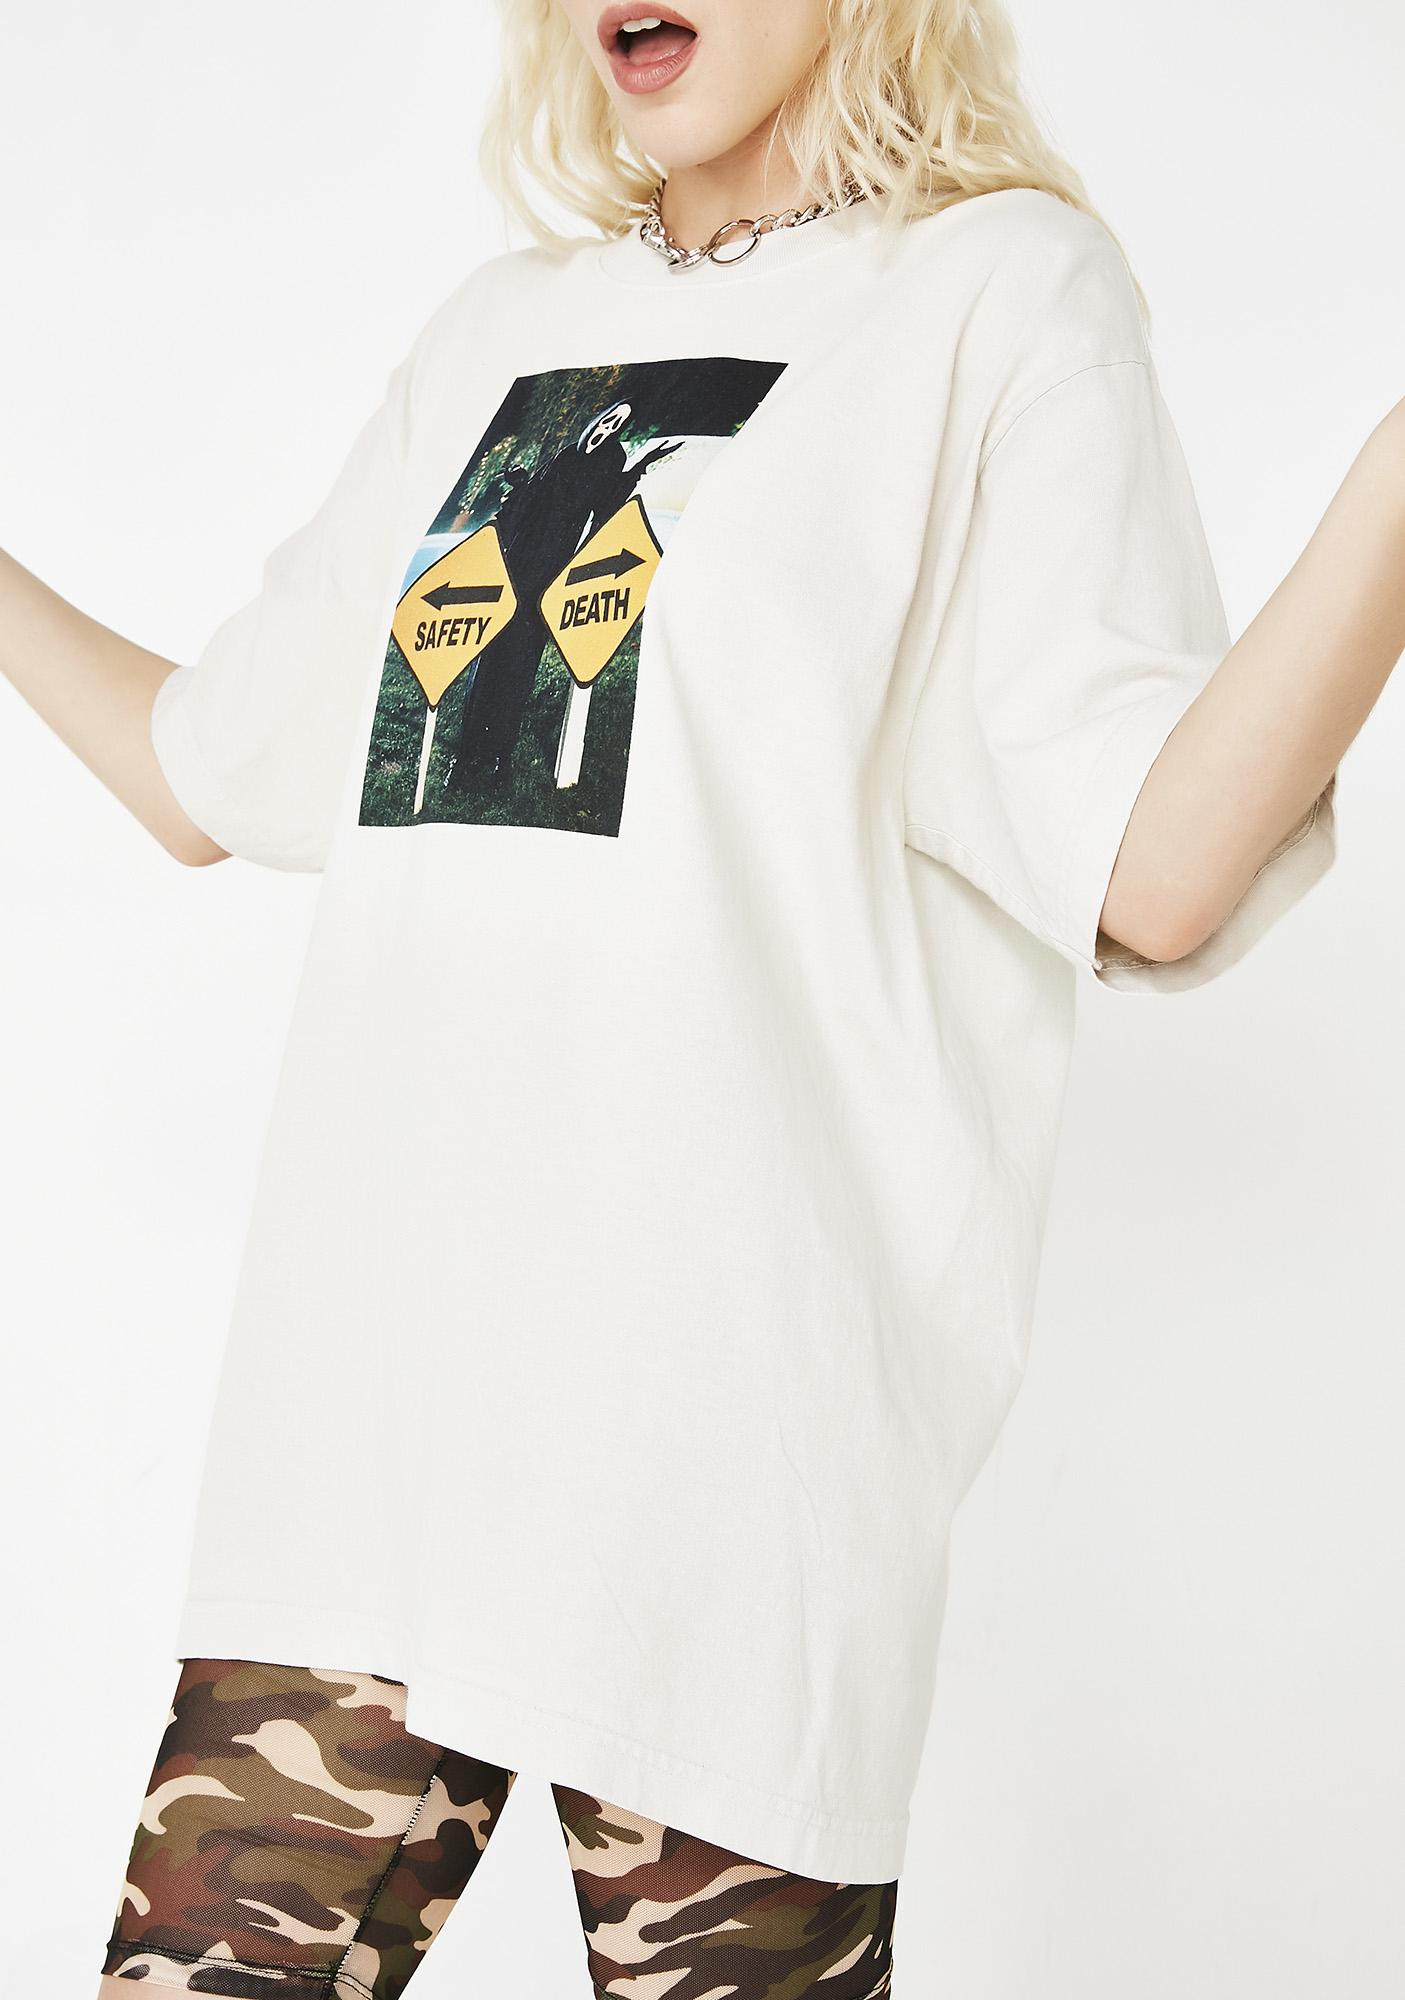 Dumbgood Safety Or Death Graphic Tee